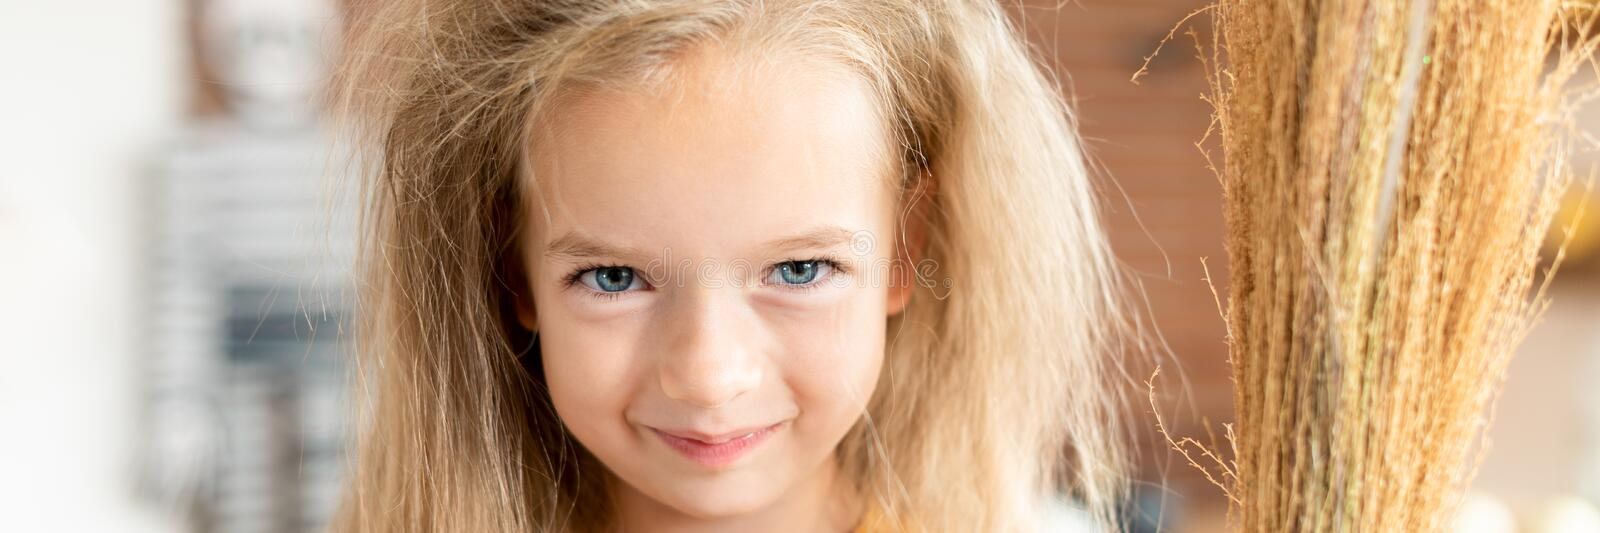 Cute little girl with messy hair, dressed up as a witch, holding a broom, looking at camera smiling. Halloween party or carnival. royalty free stock photos